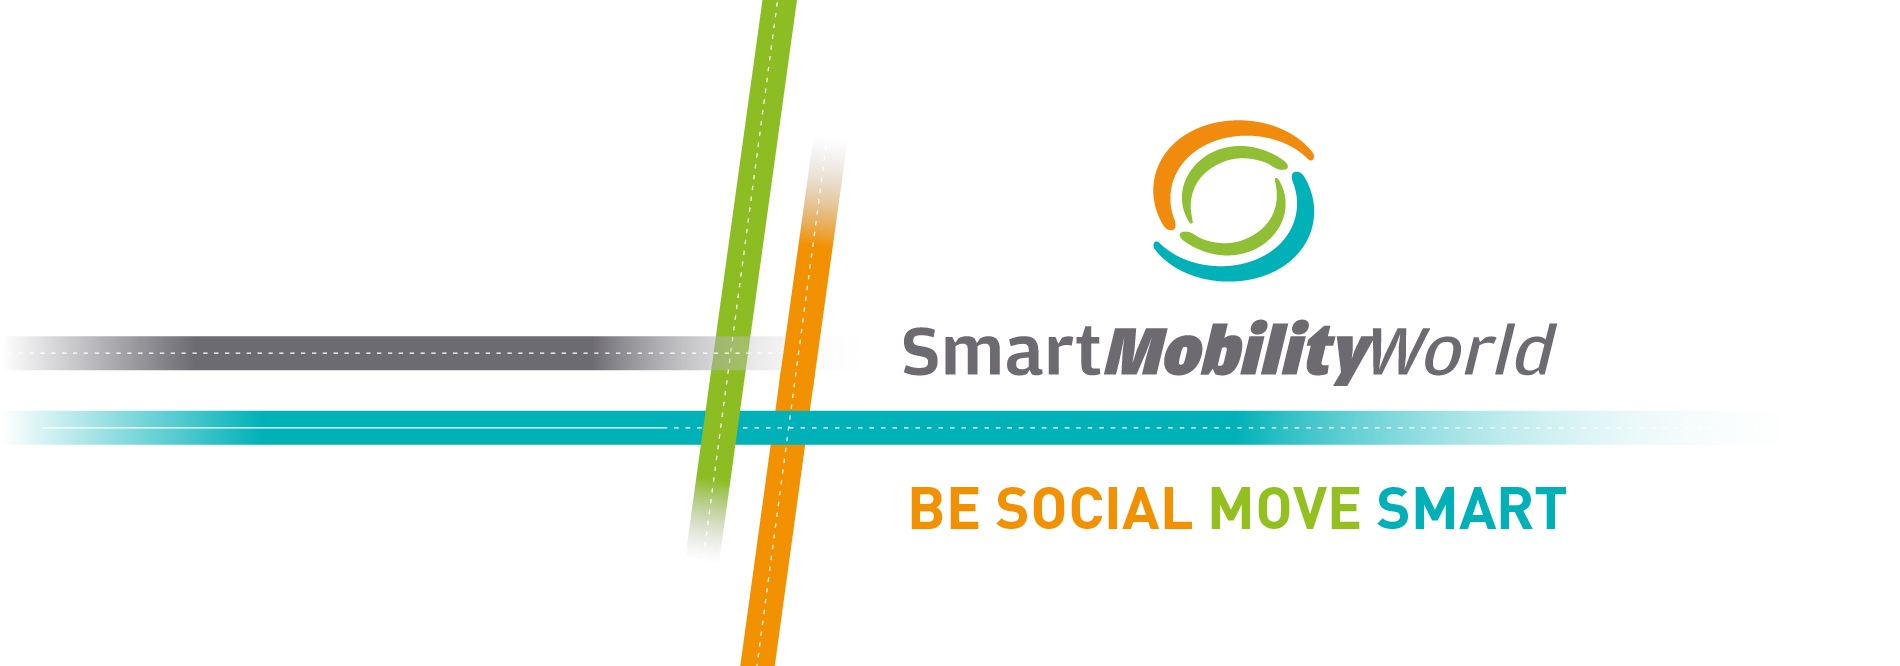 abbastanza SmartMobilityWorld | Smart Mobility, Smart People, Smart City QP62